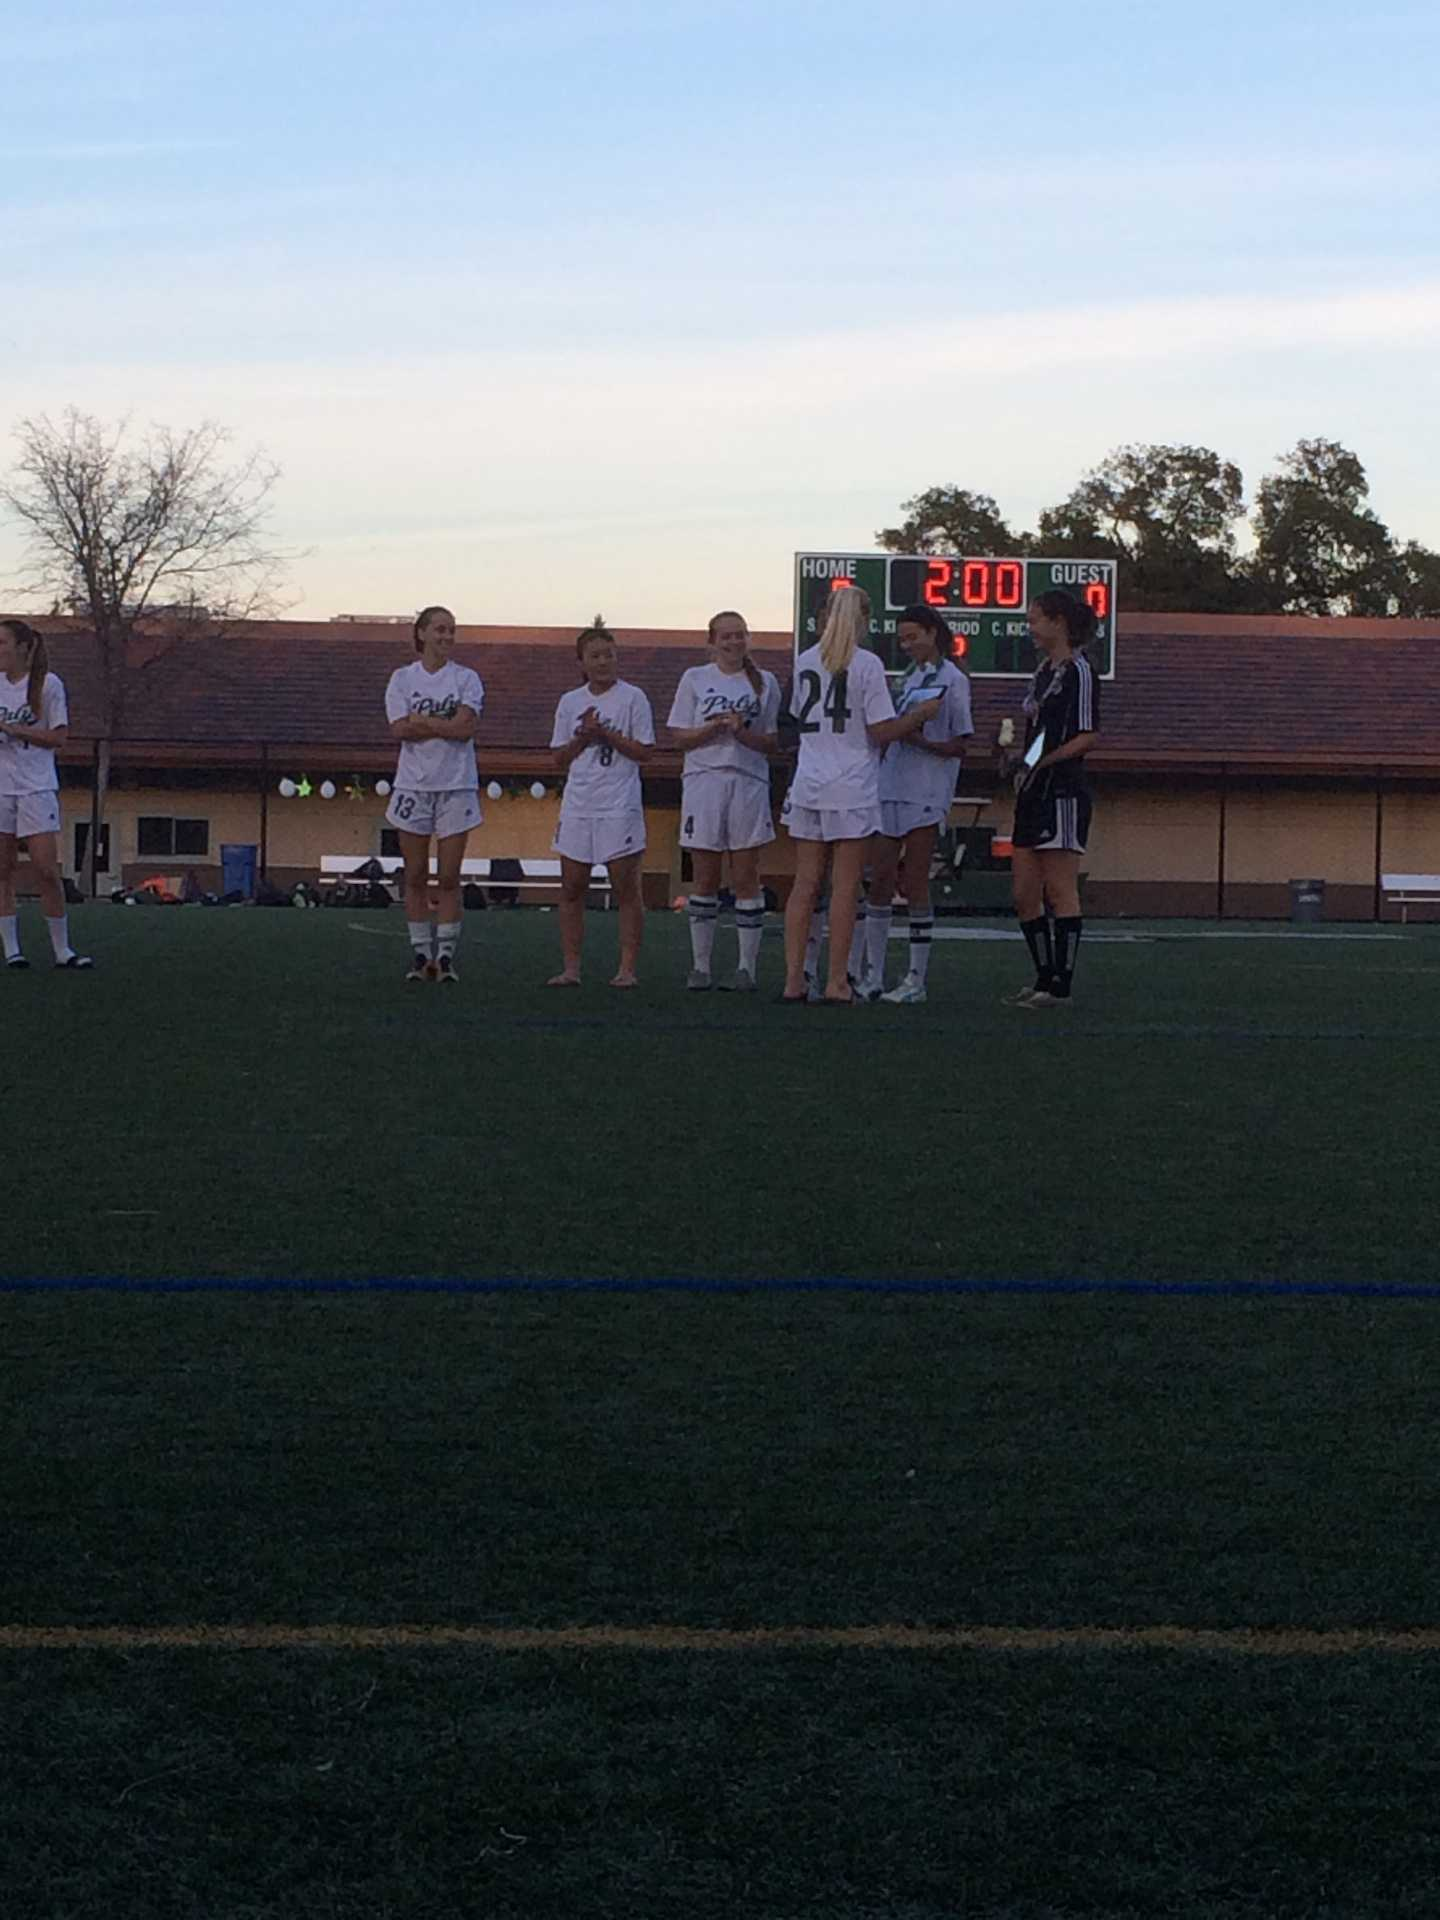 Paly's six seniors are honored in a ceremony following their 8-0 win over Homestead. Senior night marked the final home game of league play.